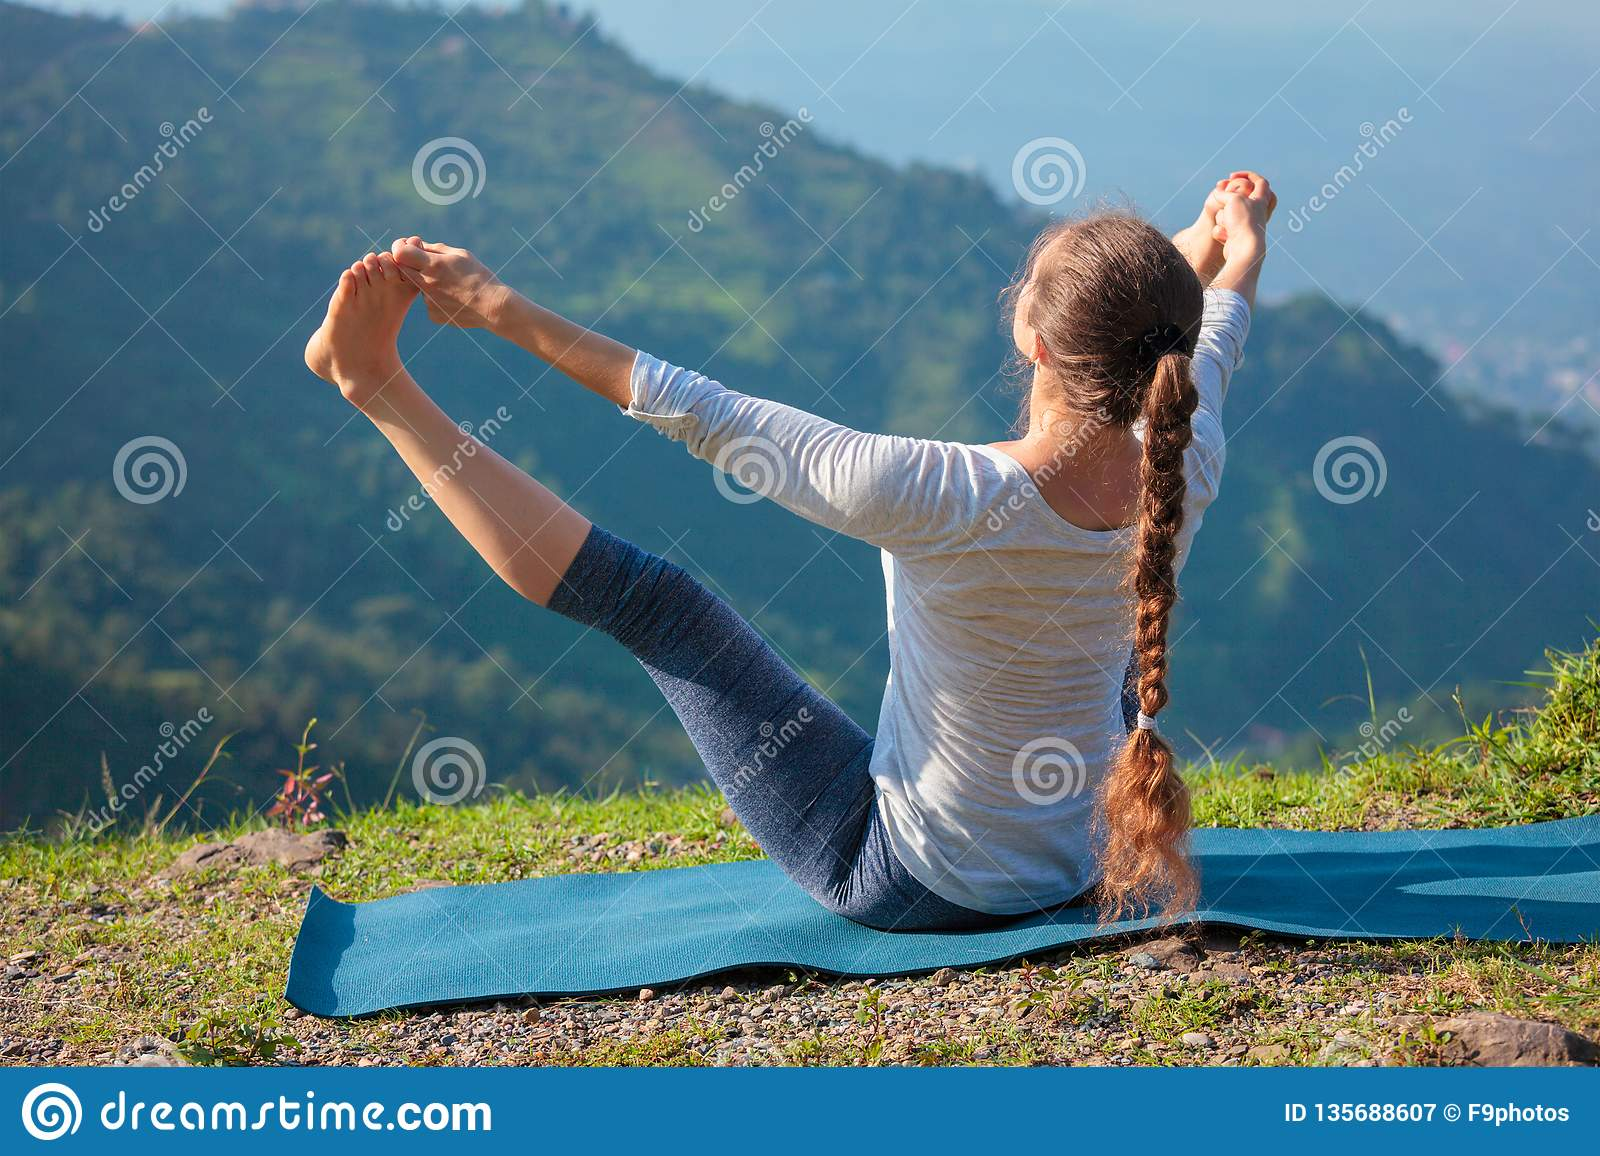 Yoga outdoors in mountains